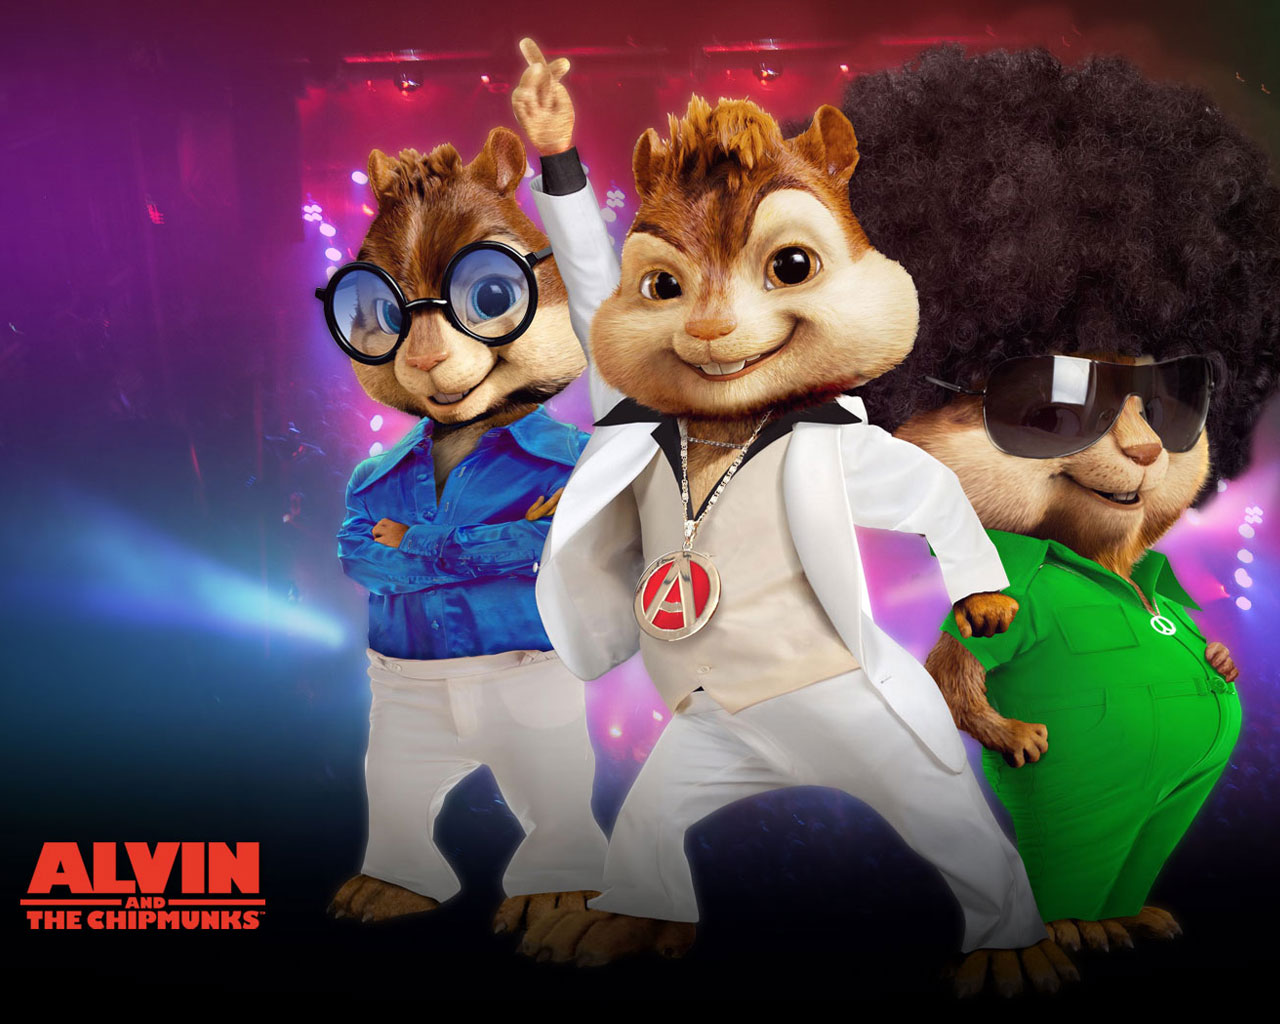 Alvin And The Chipmunks Wallpapers HD Wallpapers - alvin and the chipmunks wallpapers